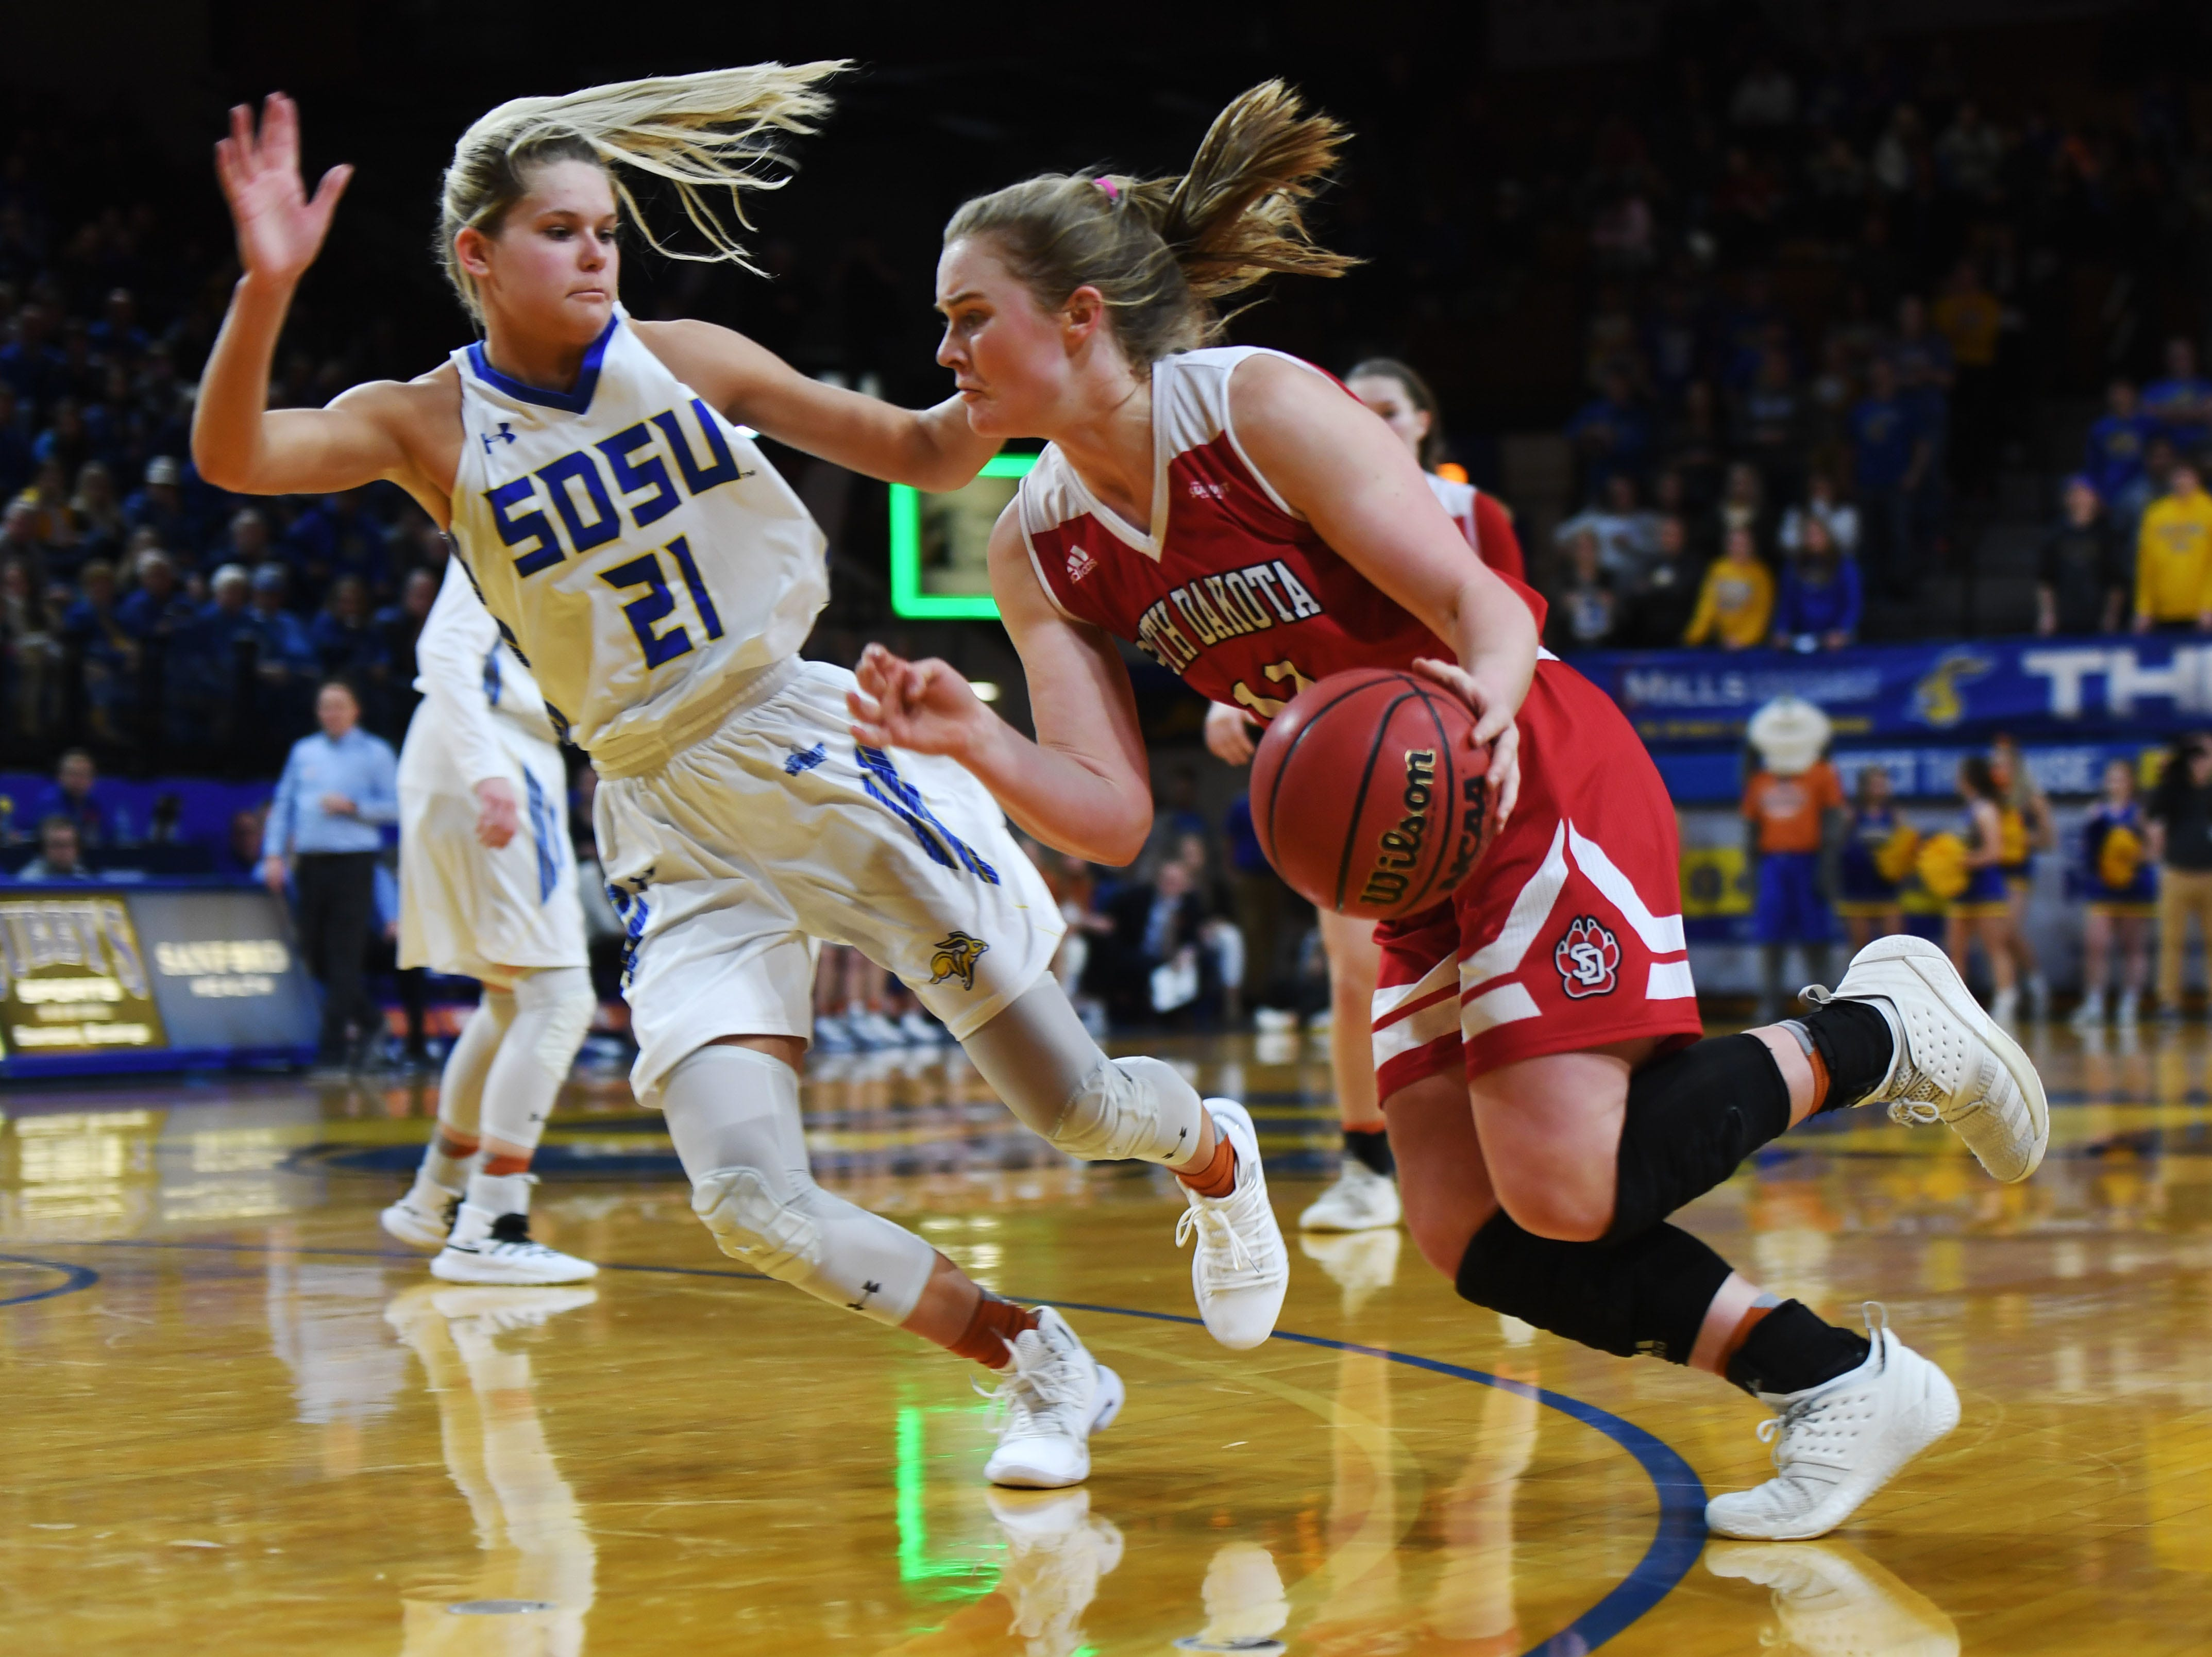 USD's Monica Arens goes against SDSU's Tylee Irwin during the game Sunday, Feb. 24, at Frost Arena in Brookings.